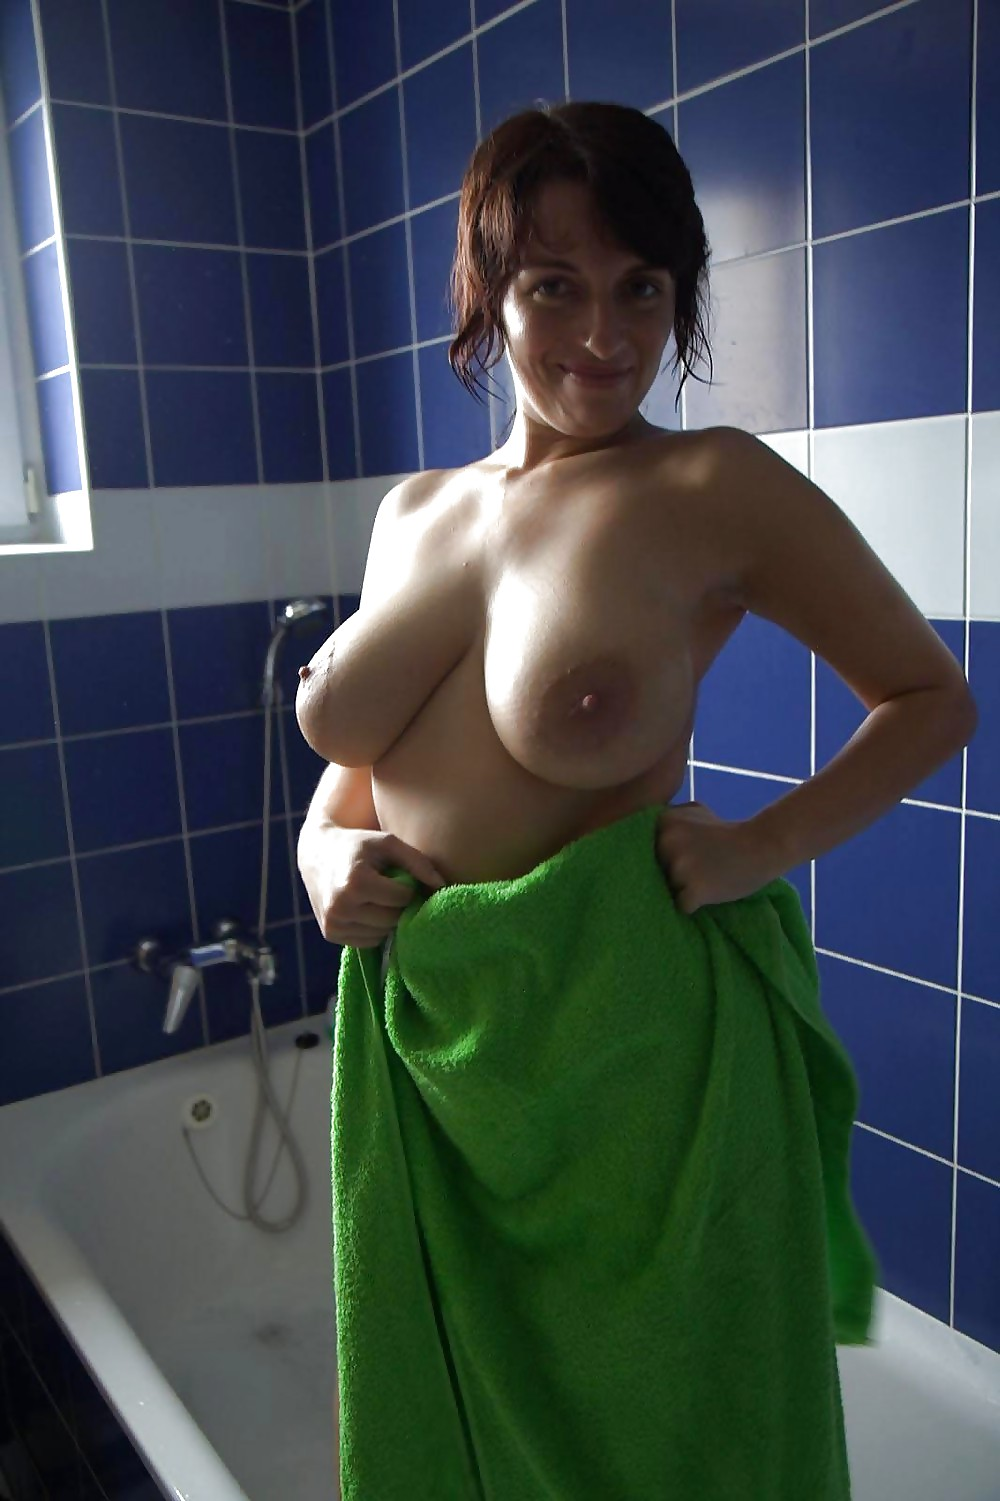 nude-women-in-bath-towels-miranda-janine-fucking